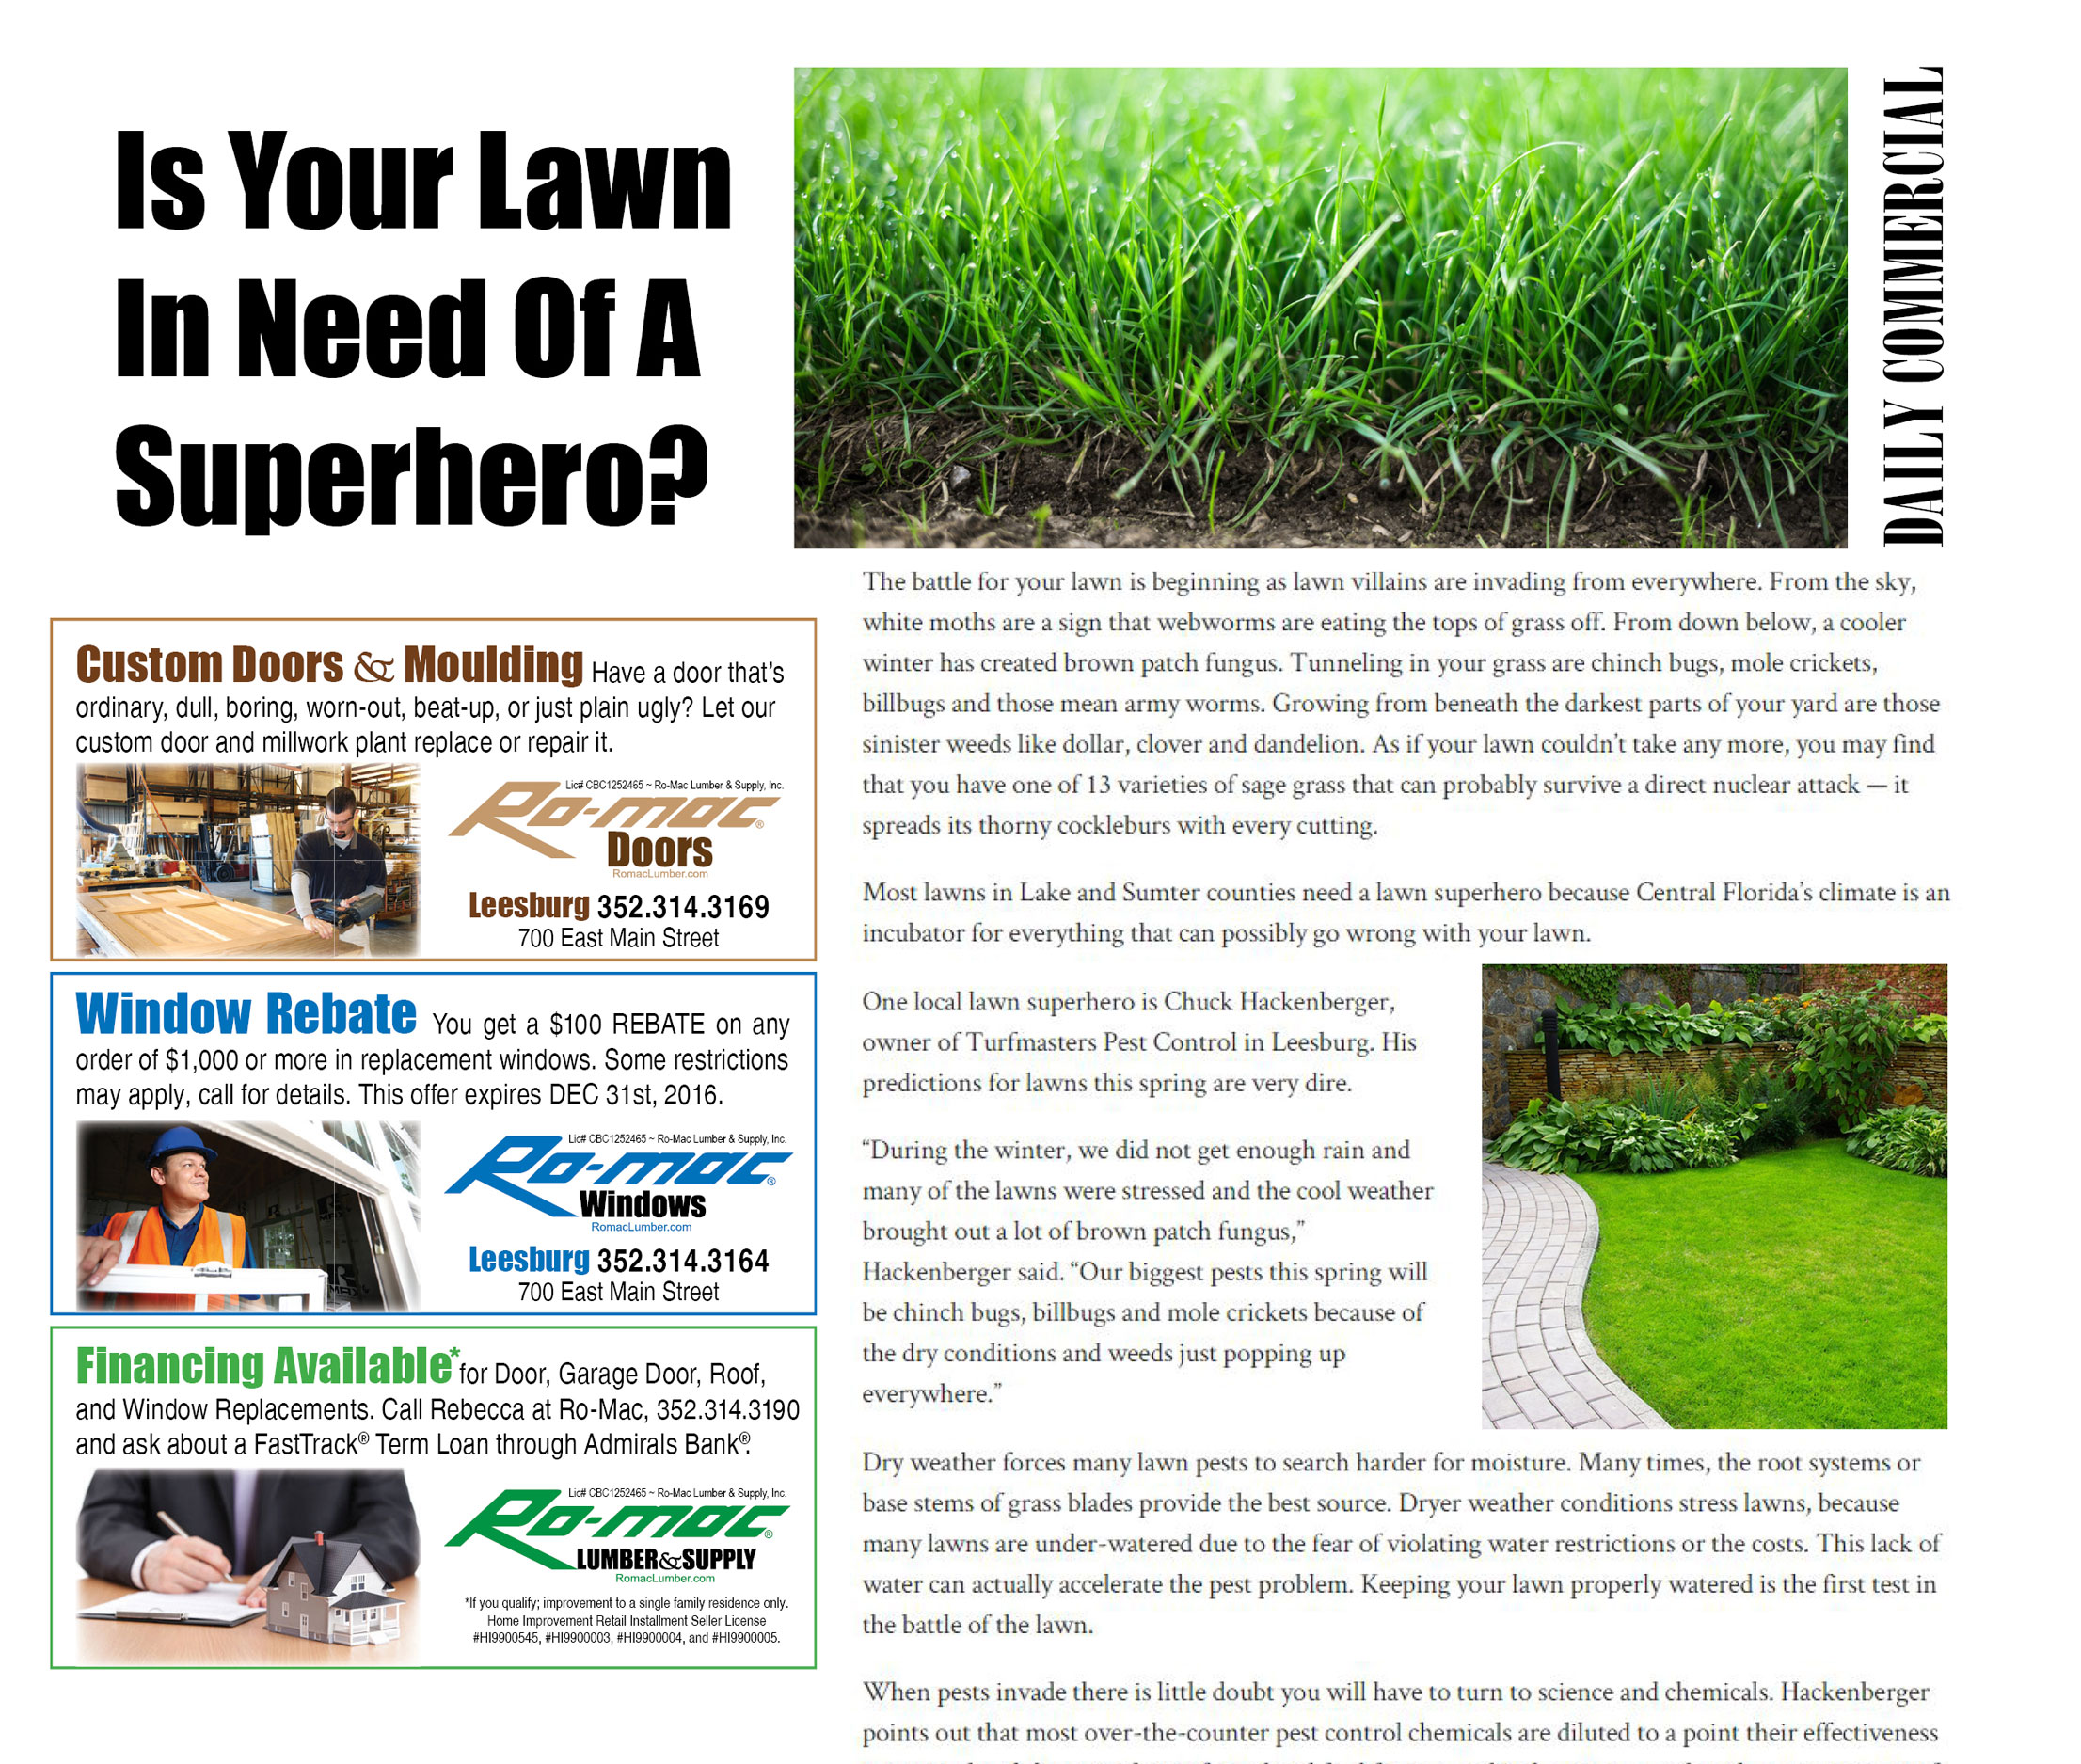 17-04-17 LawnCare